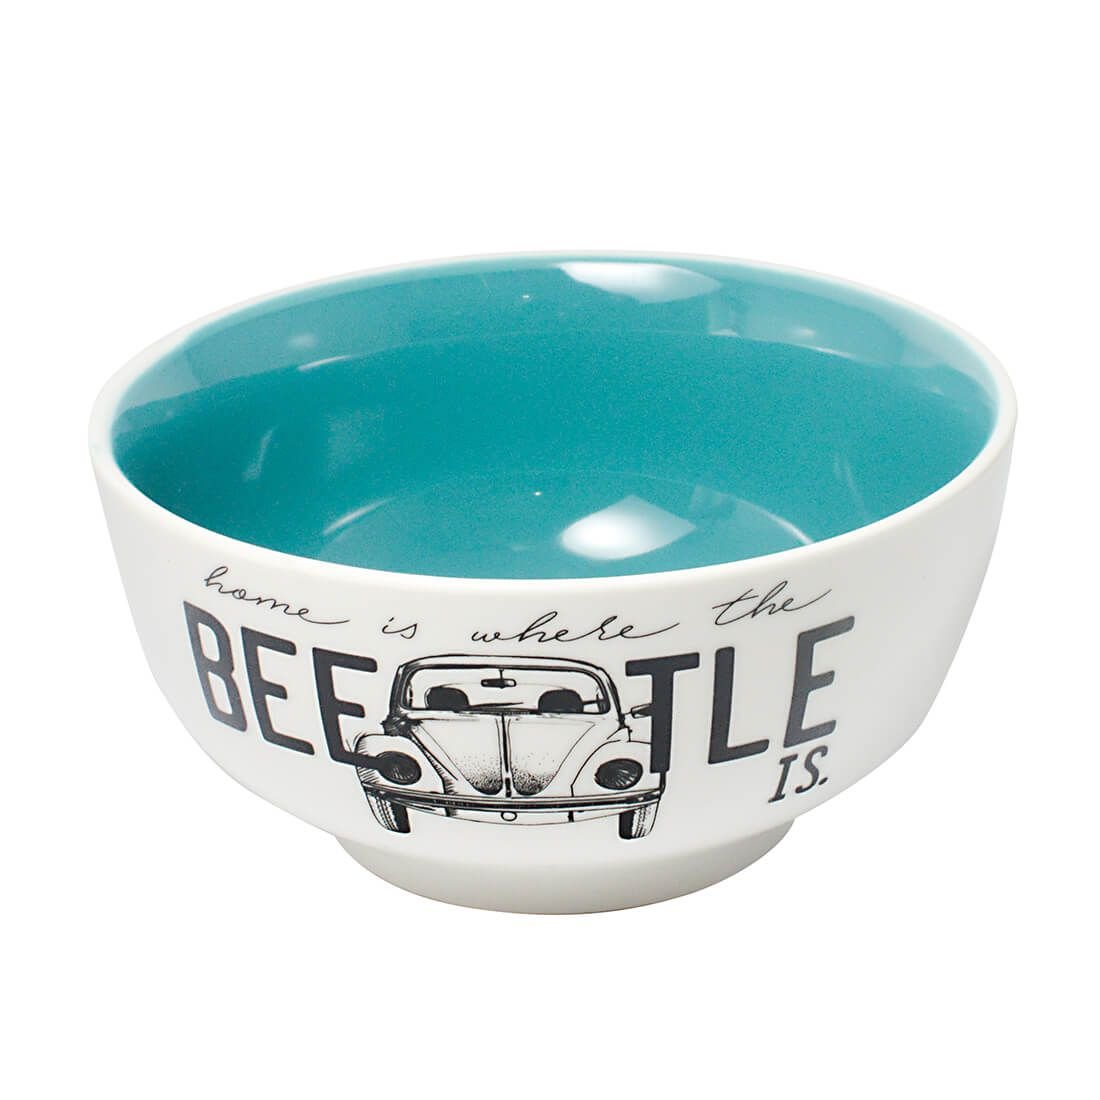 Tigela Bowl de Porcelana 400ml Fusca Beetle volkswagen